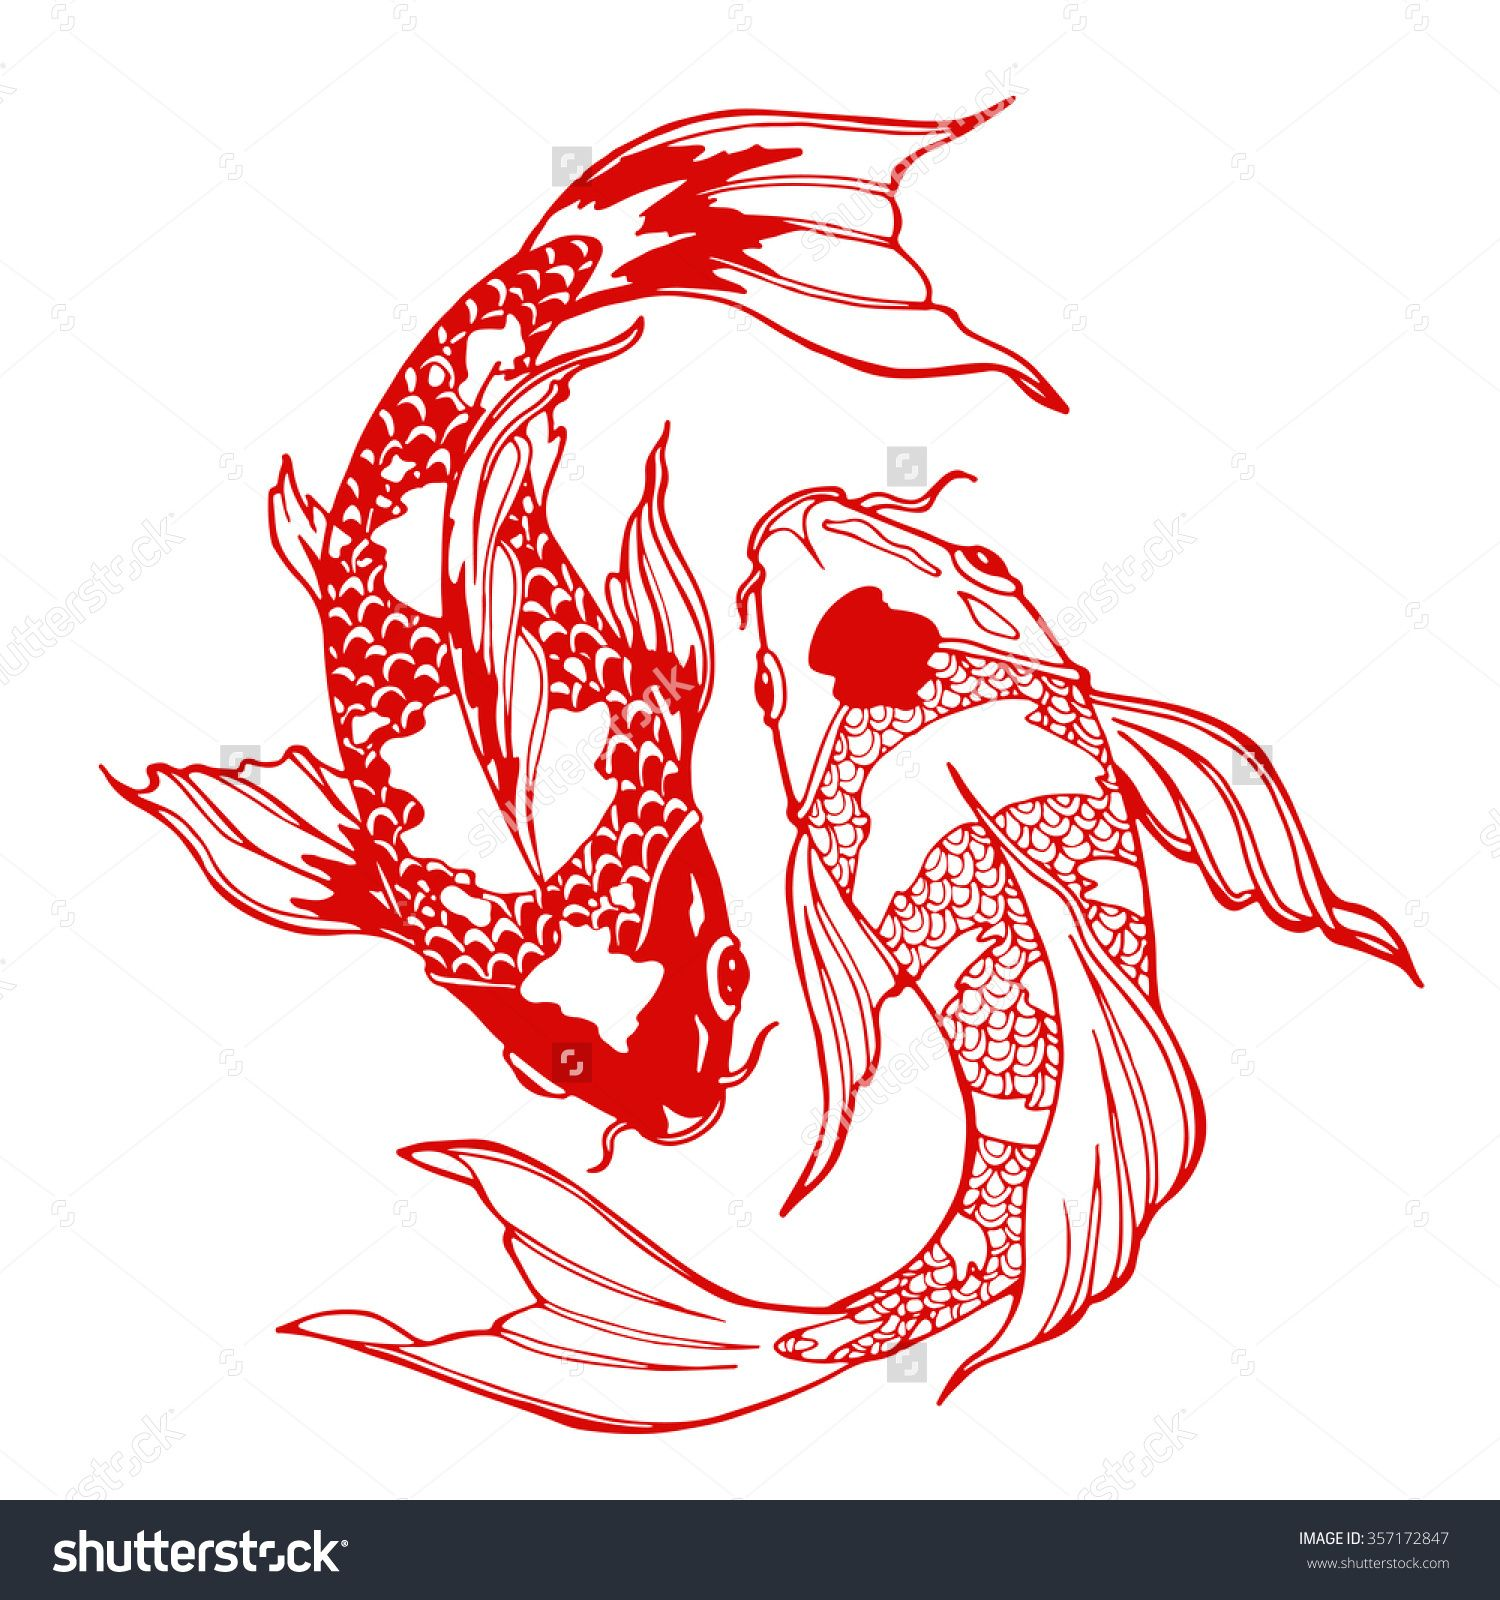 Illustration Of Koi Carp, Coloring Page, Yin Yang - 357172847 ...